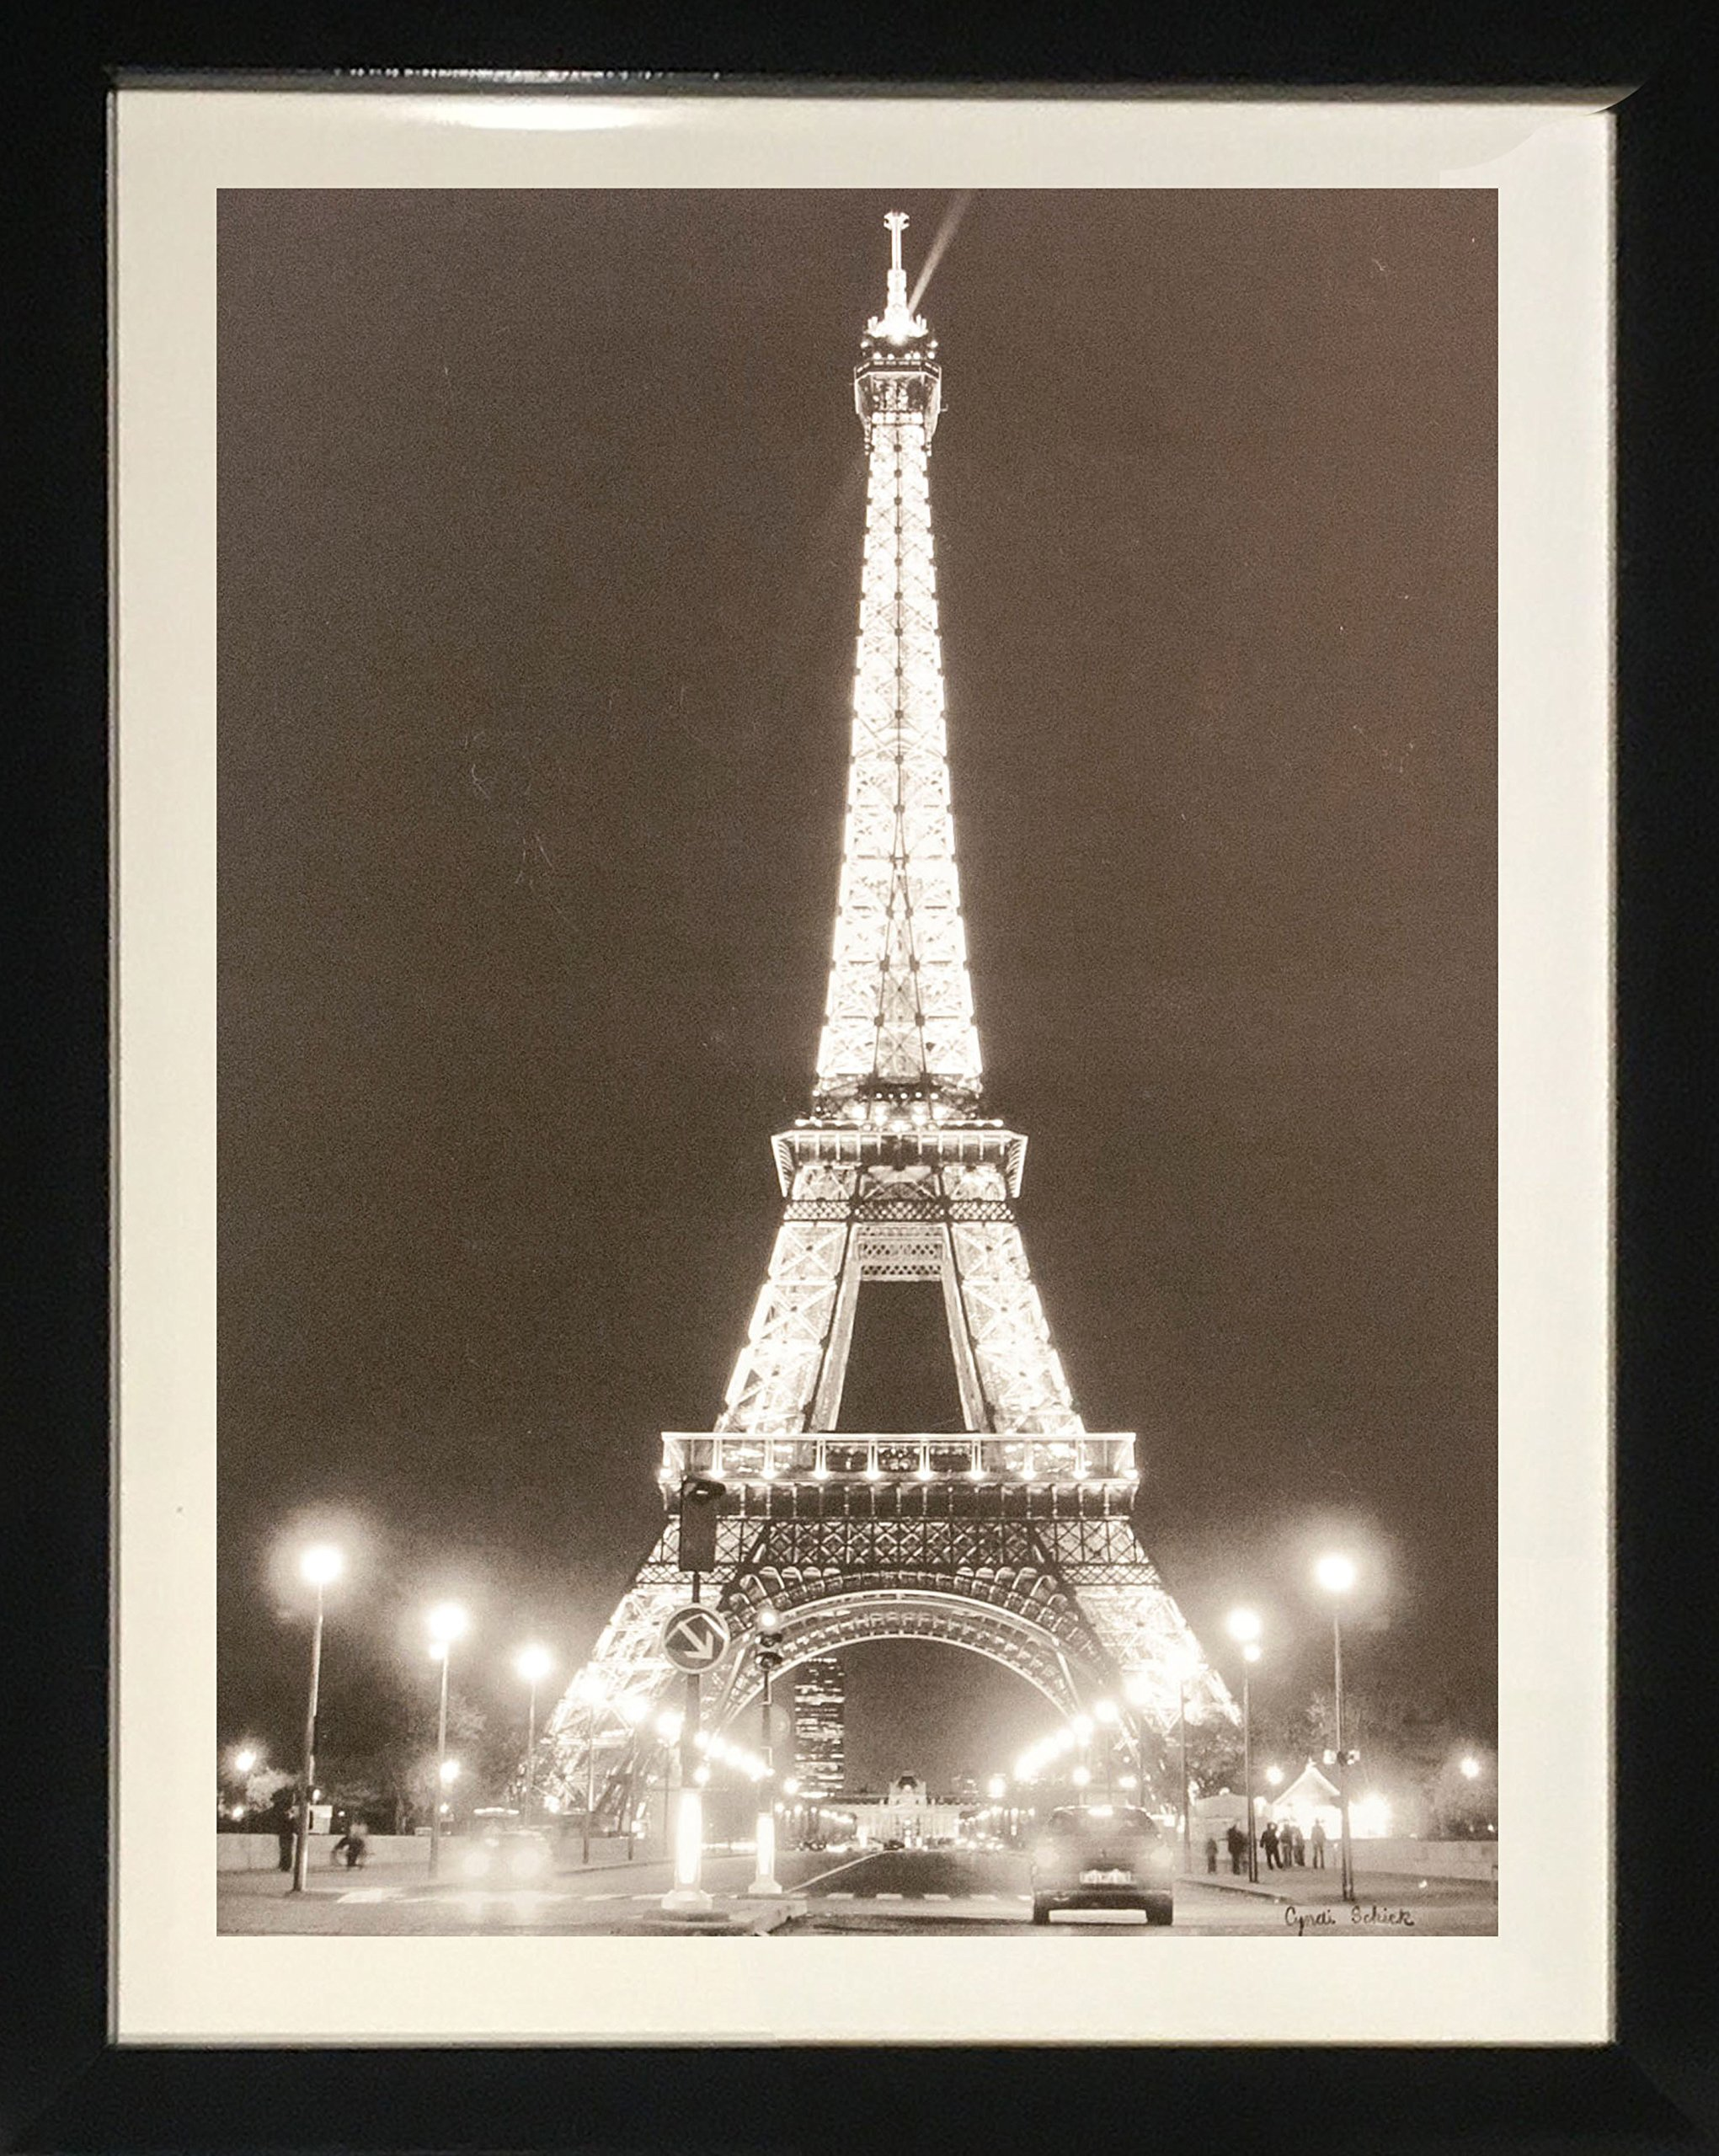 Eiffel Tower at Night by